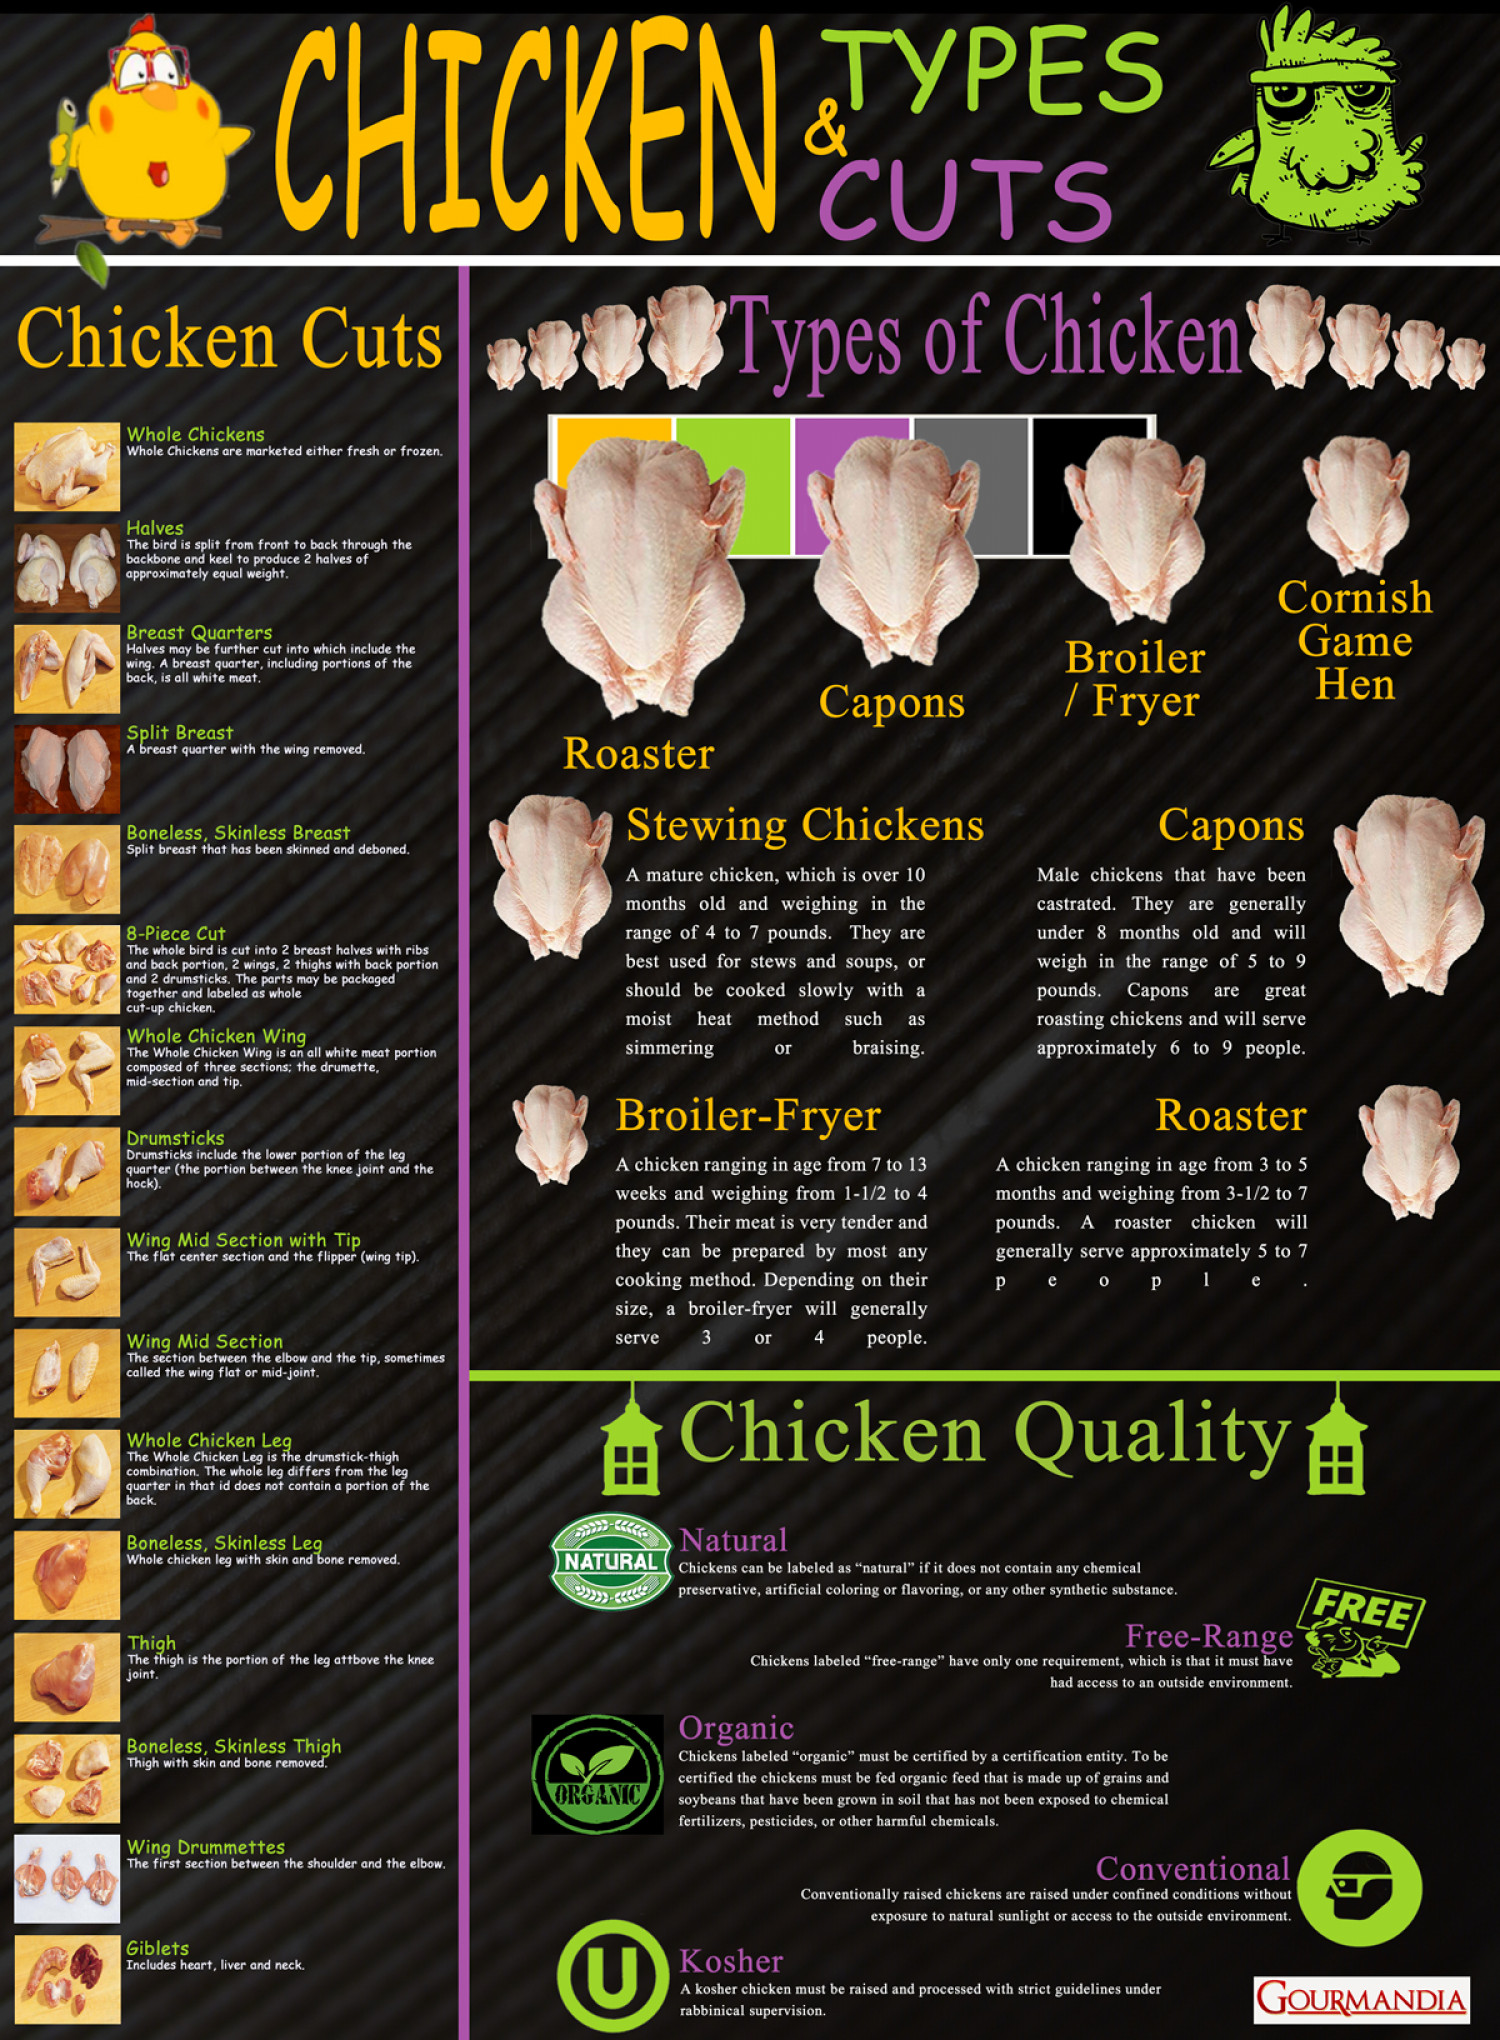 Chicken Types and Cuts Infographic